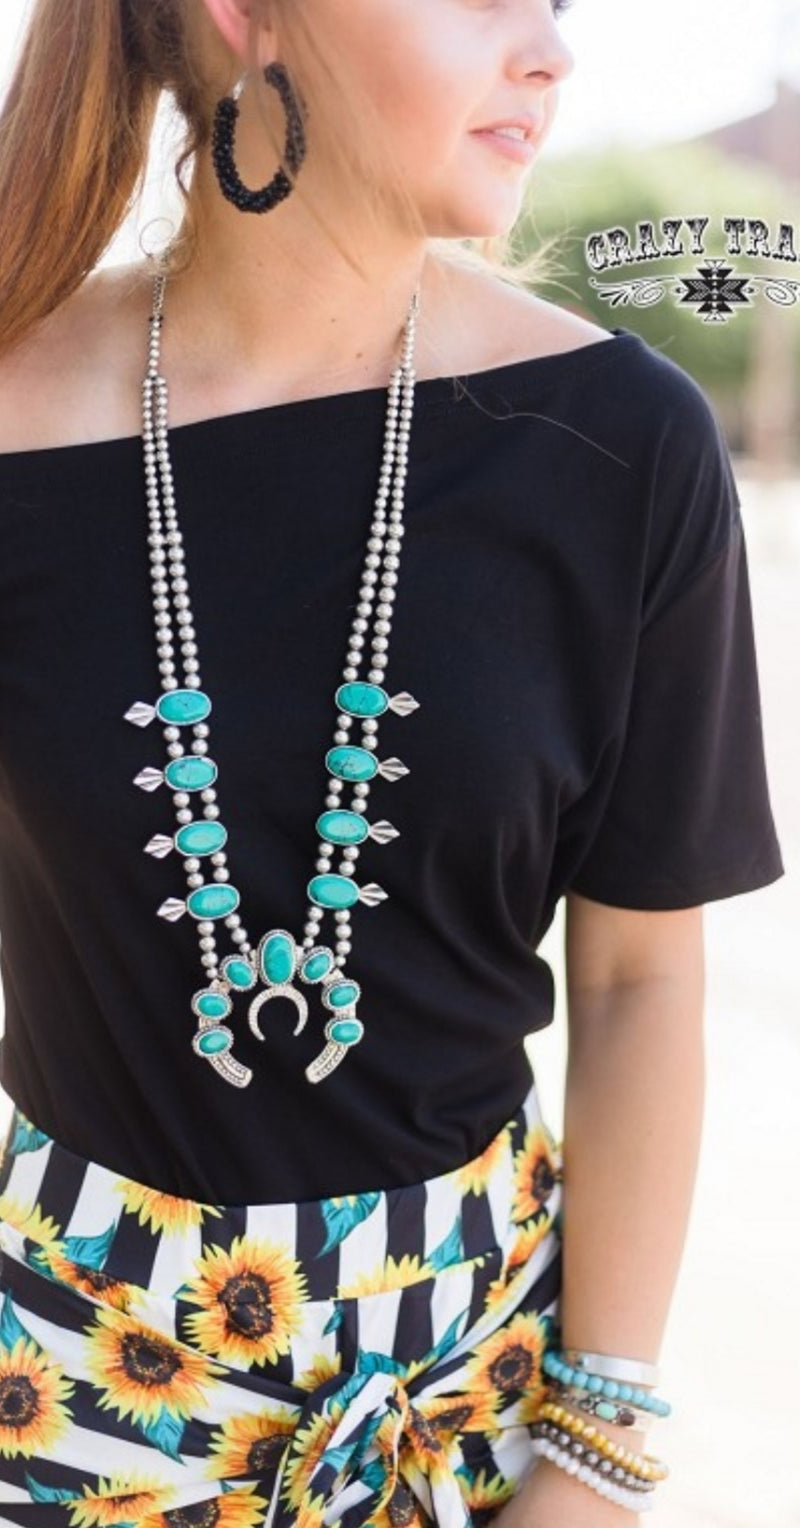 Miss Bloss Turquoise Squash Blossom Necklace